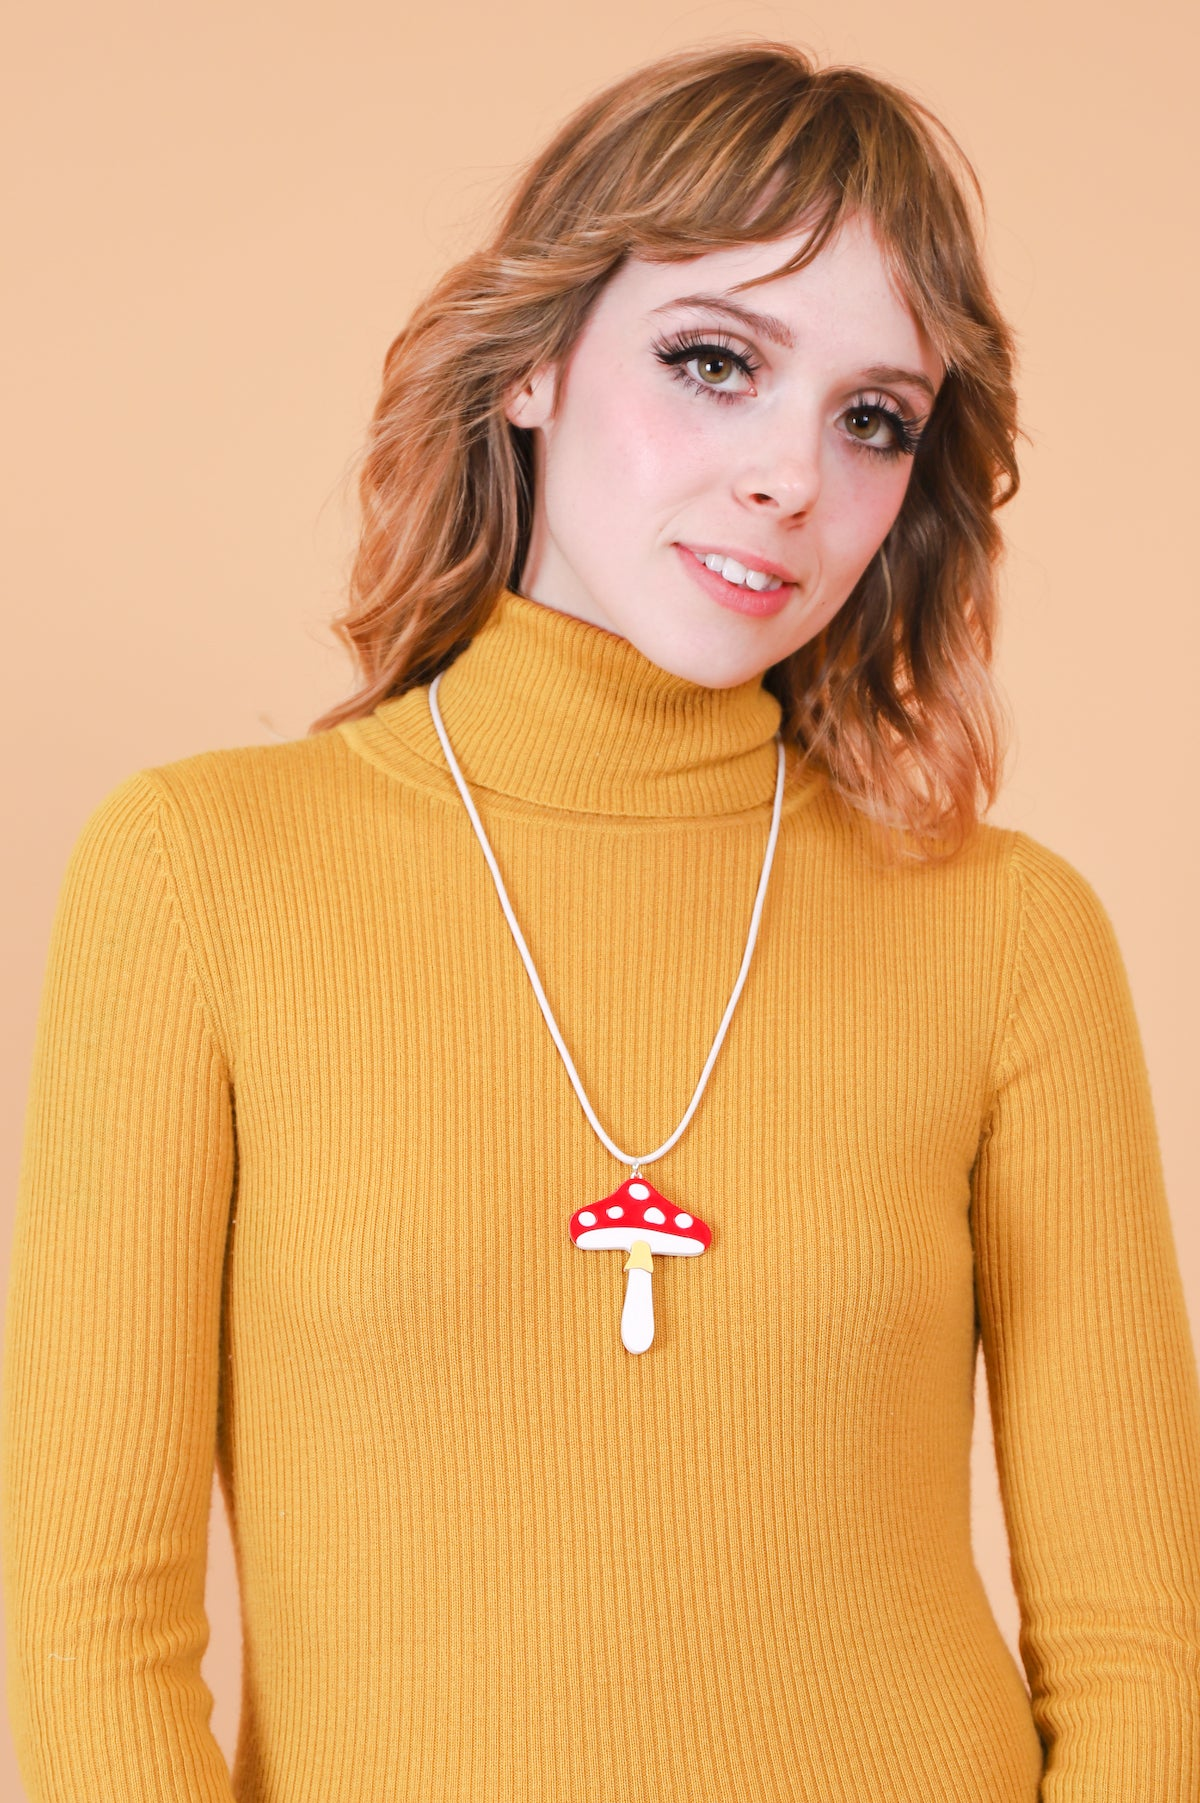 The Magic Mushroom Necklace